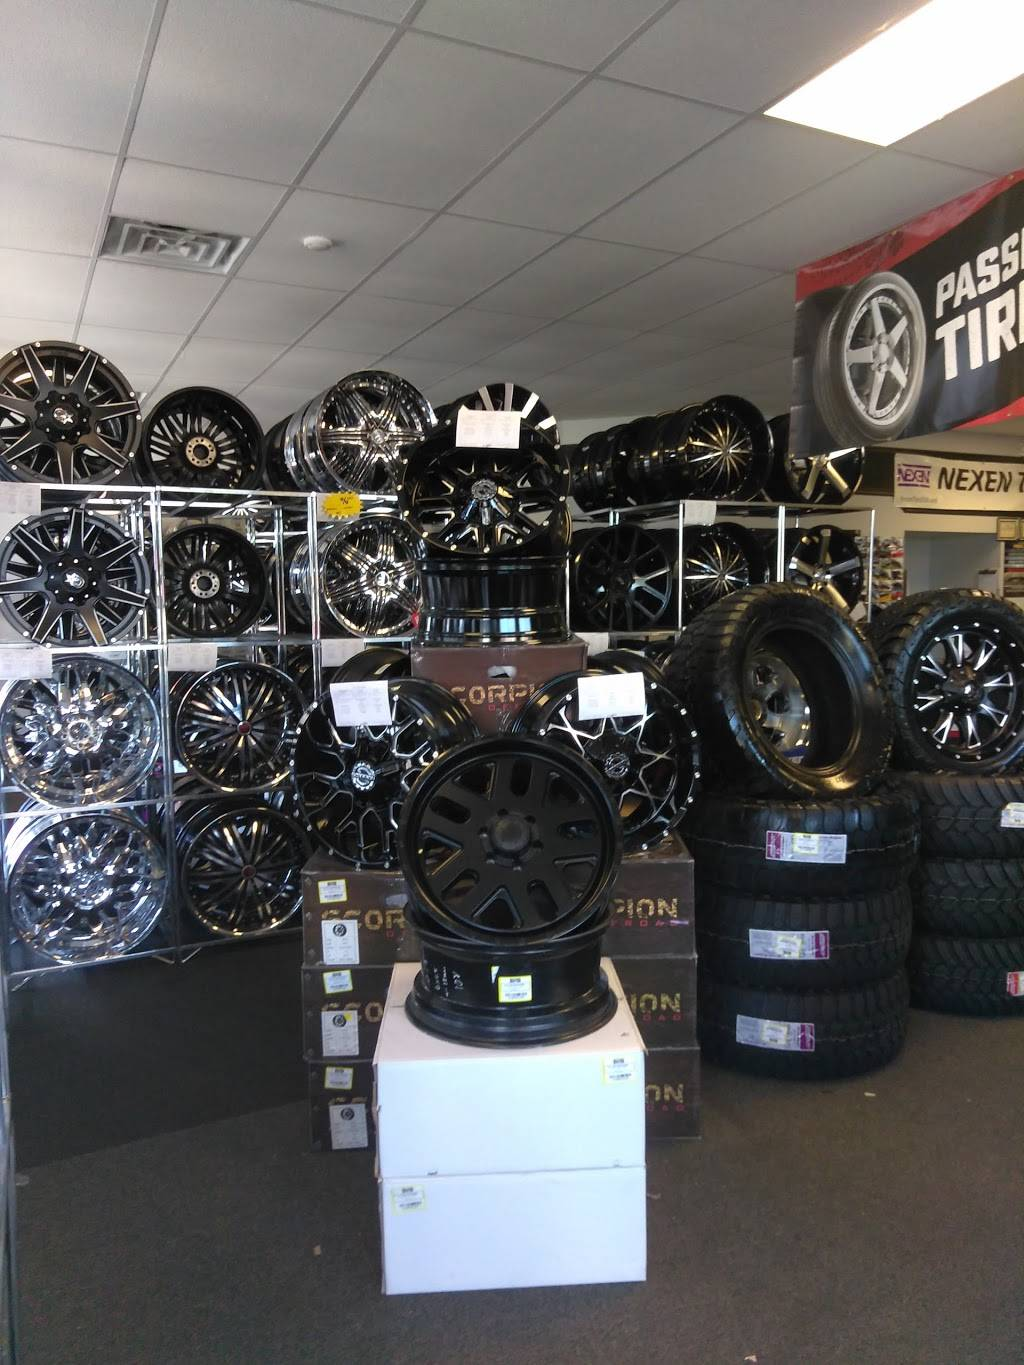 Rent-A-Tire Custom Wheels & Tires in Pasadena, TX - car repair  | Photo 1 of 4 | Address: 2941 Spencer Hwy, Pasadena, TX 77504, USA | Phone: (713) 943-8794